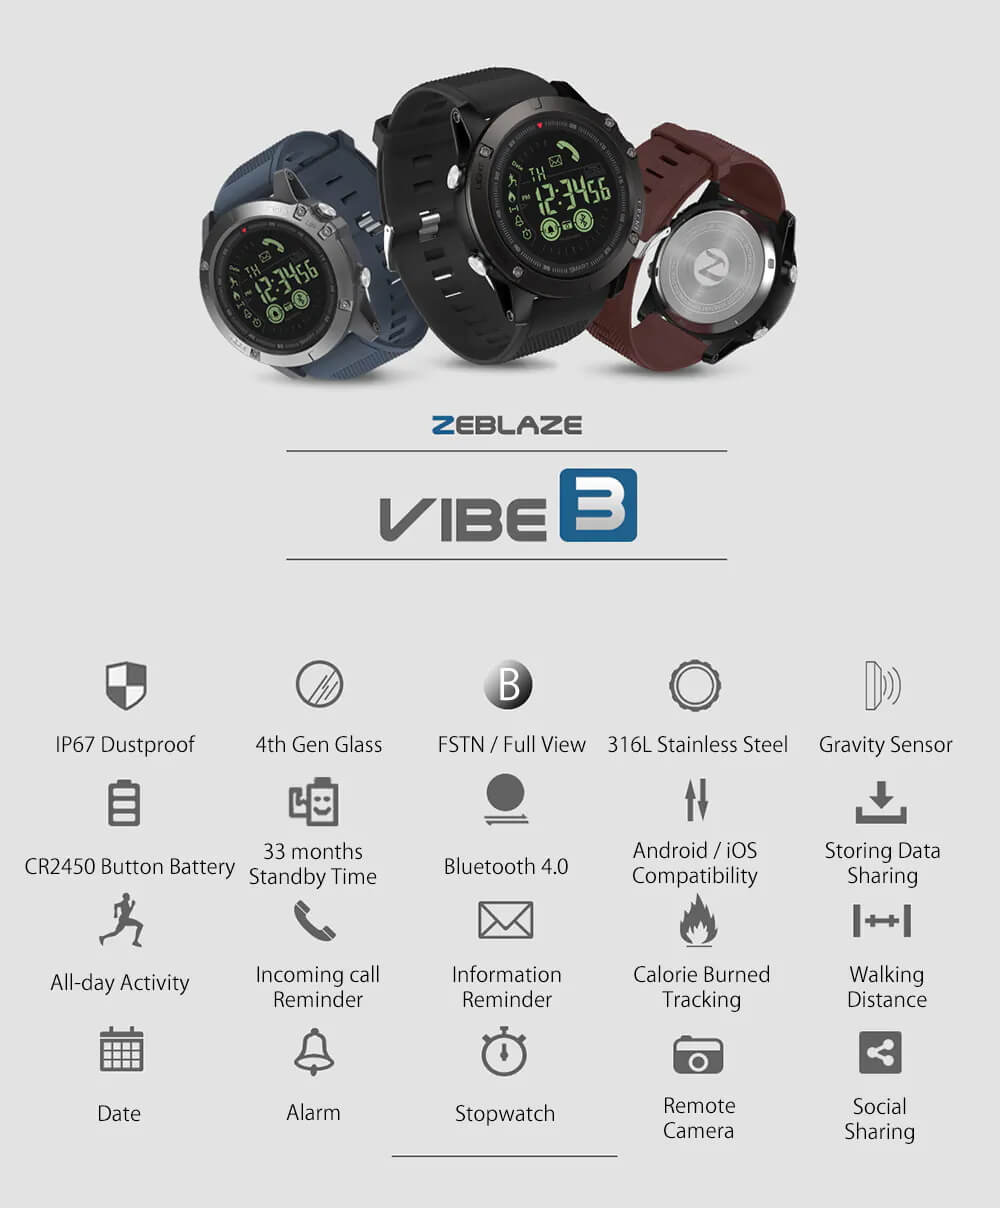 Zeblaze VIBE 3 Sports Smartwatch.jpg